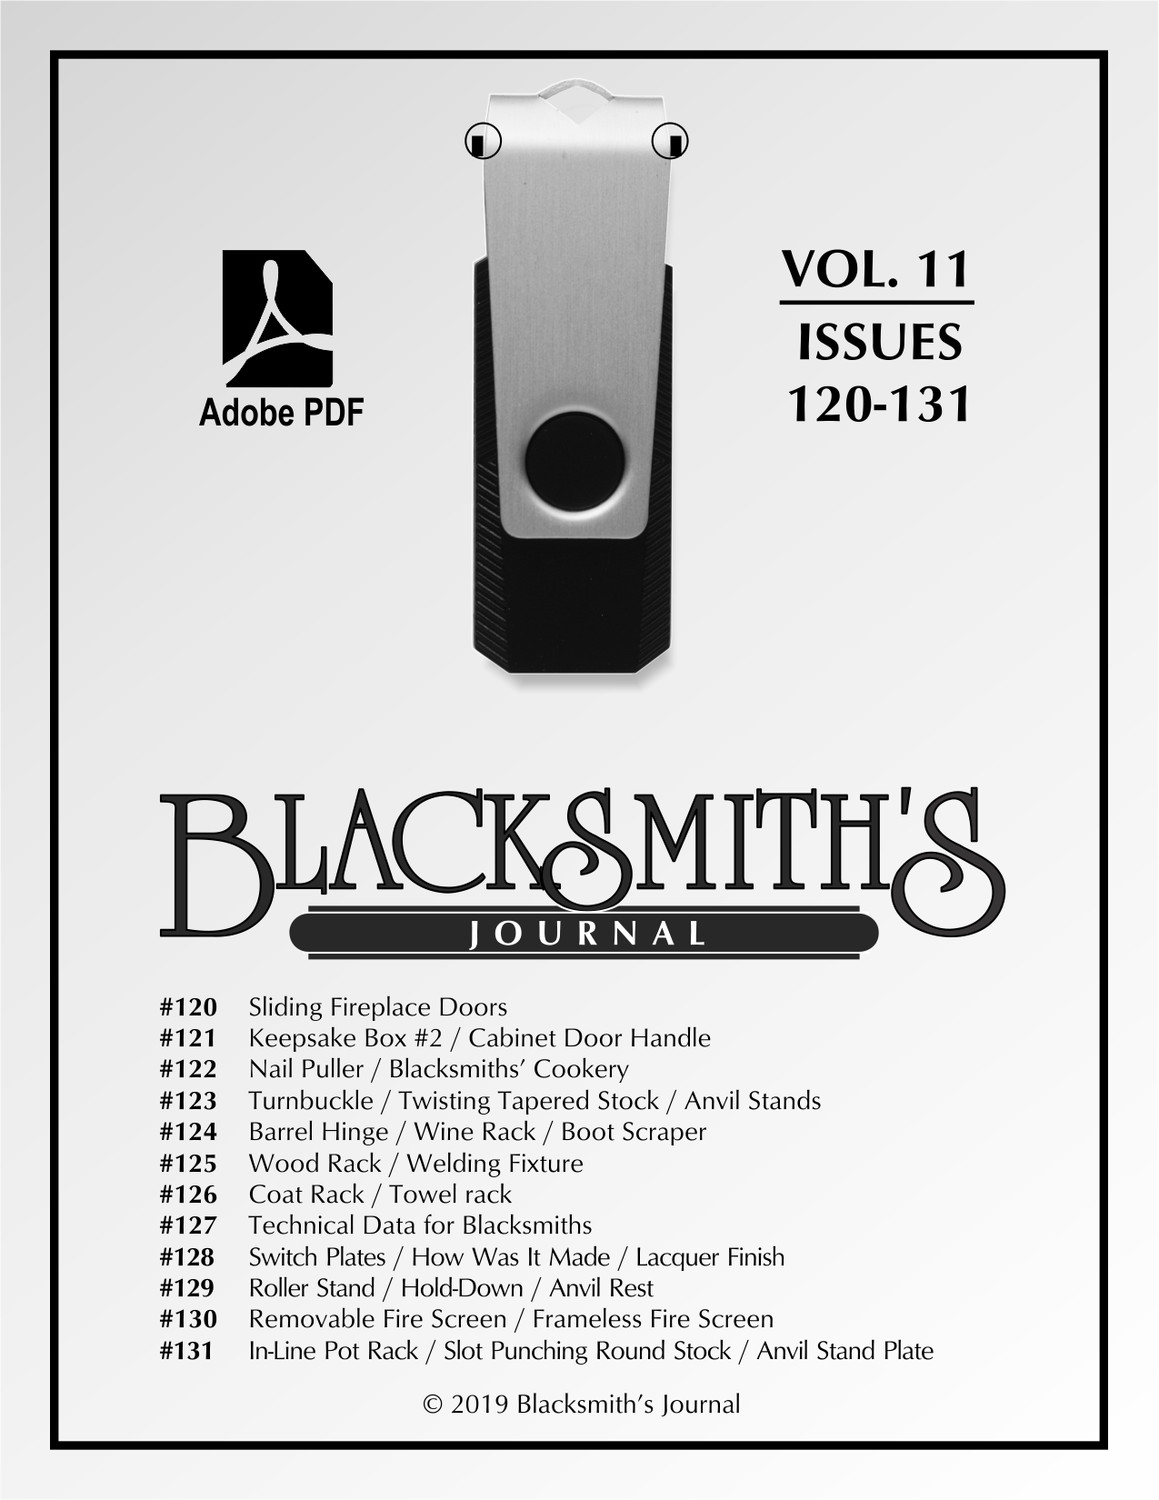 USB Flash Drive - Blacksmith's Journal Vol. 11